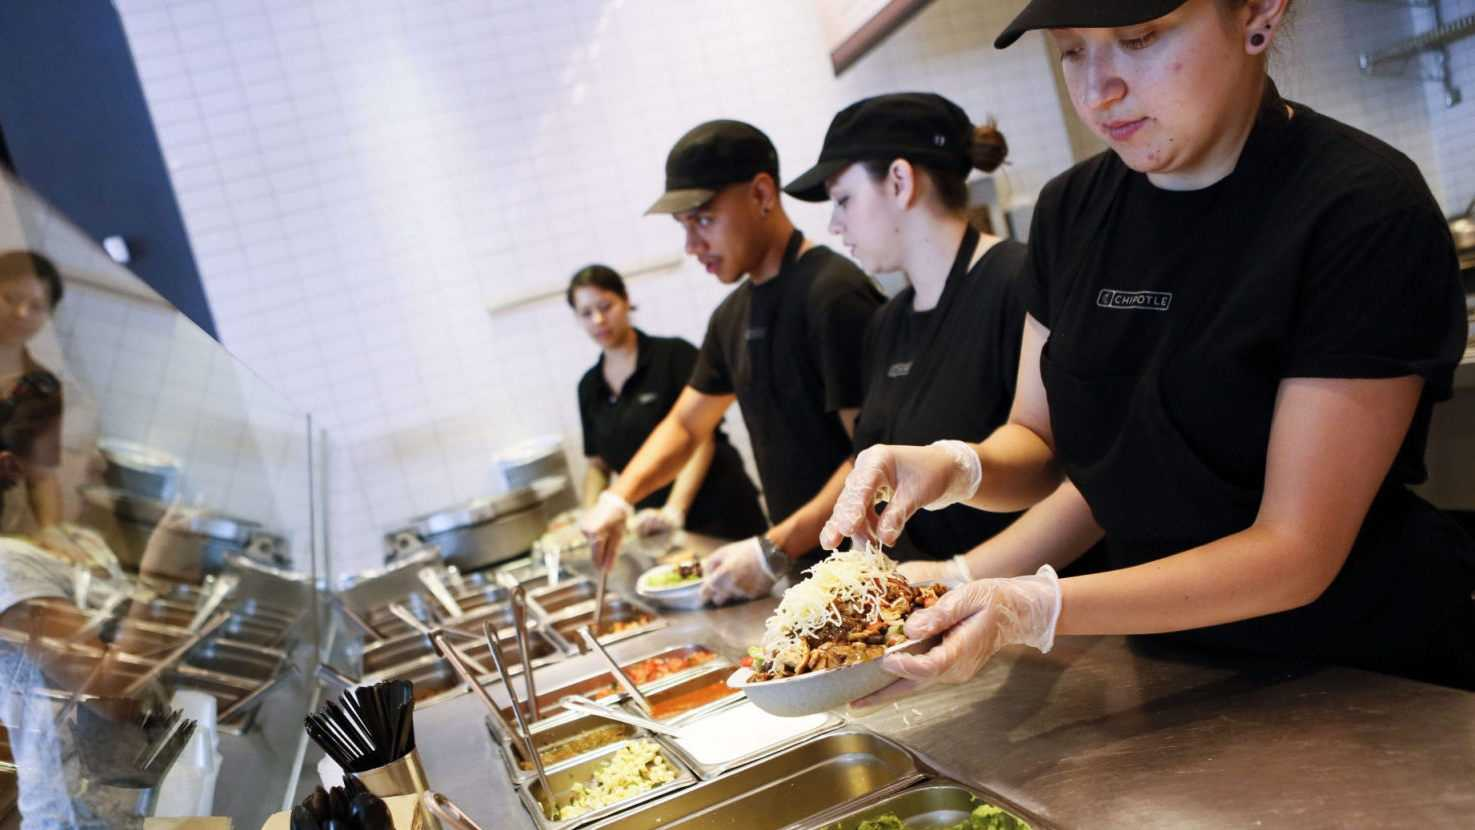 Chipotle Food Workers Corp-Image 081413.jpg